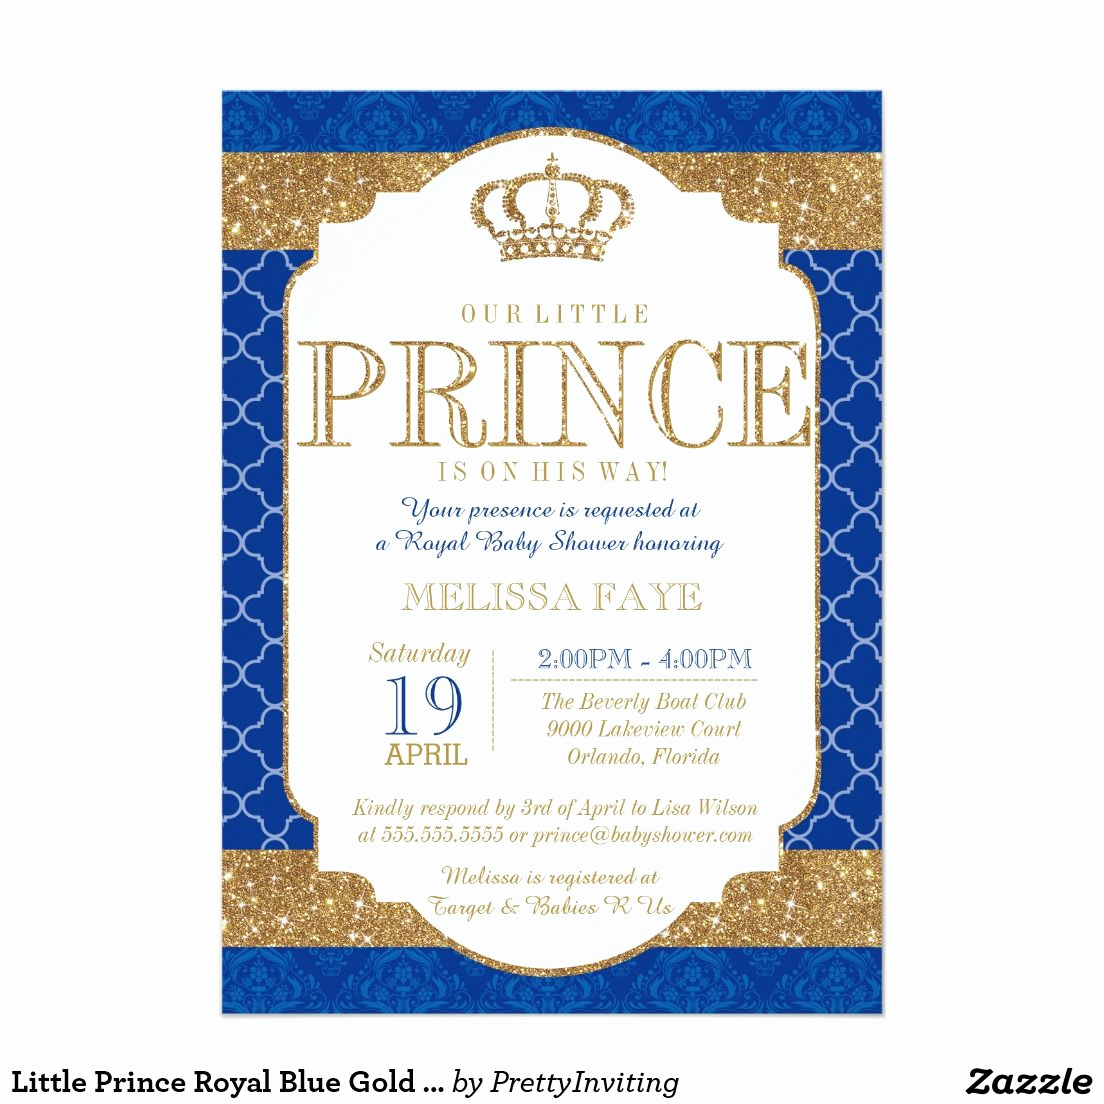 Royal Baby Shower Invitation Wording Awesome Little Prince Royal Blue Gold Baby Shower 5x7 Paper